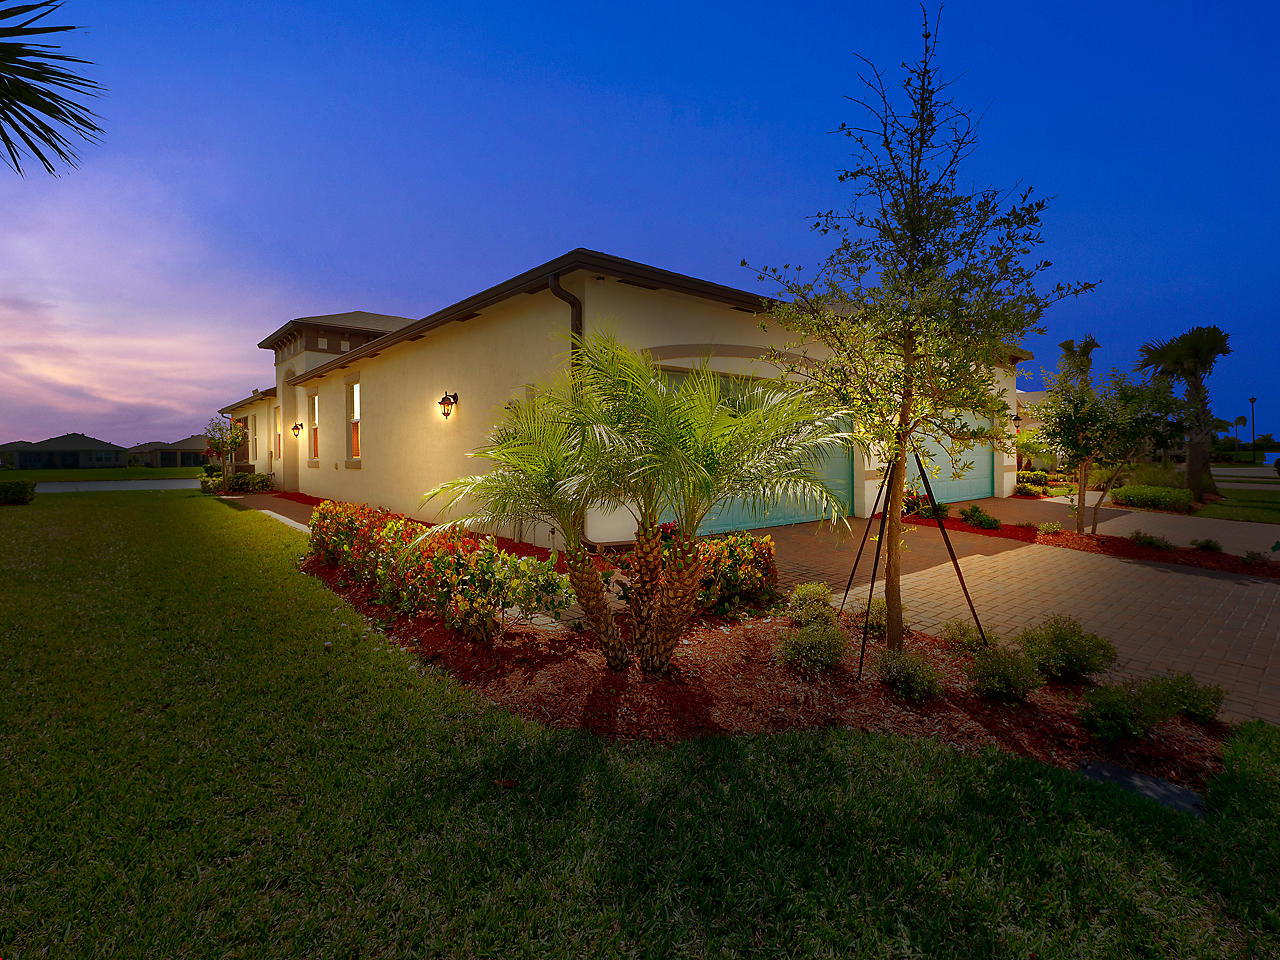 One of Port Saint Lucie 2 Bedroom Homes for Sale at 11231 SW Parkside Drive